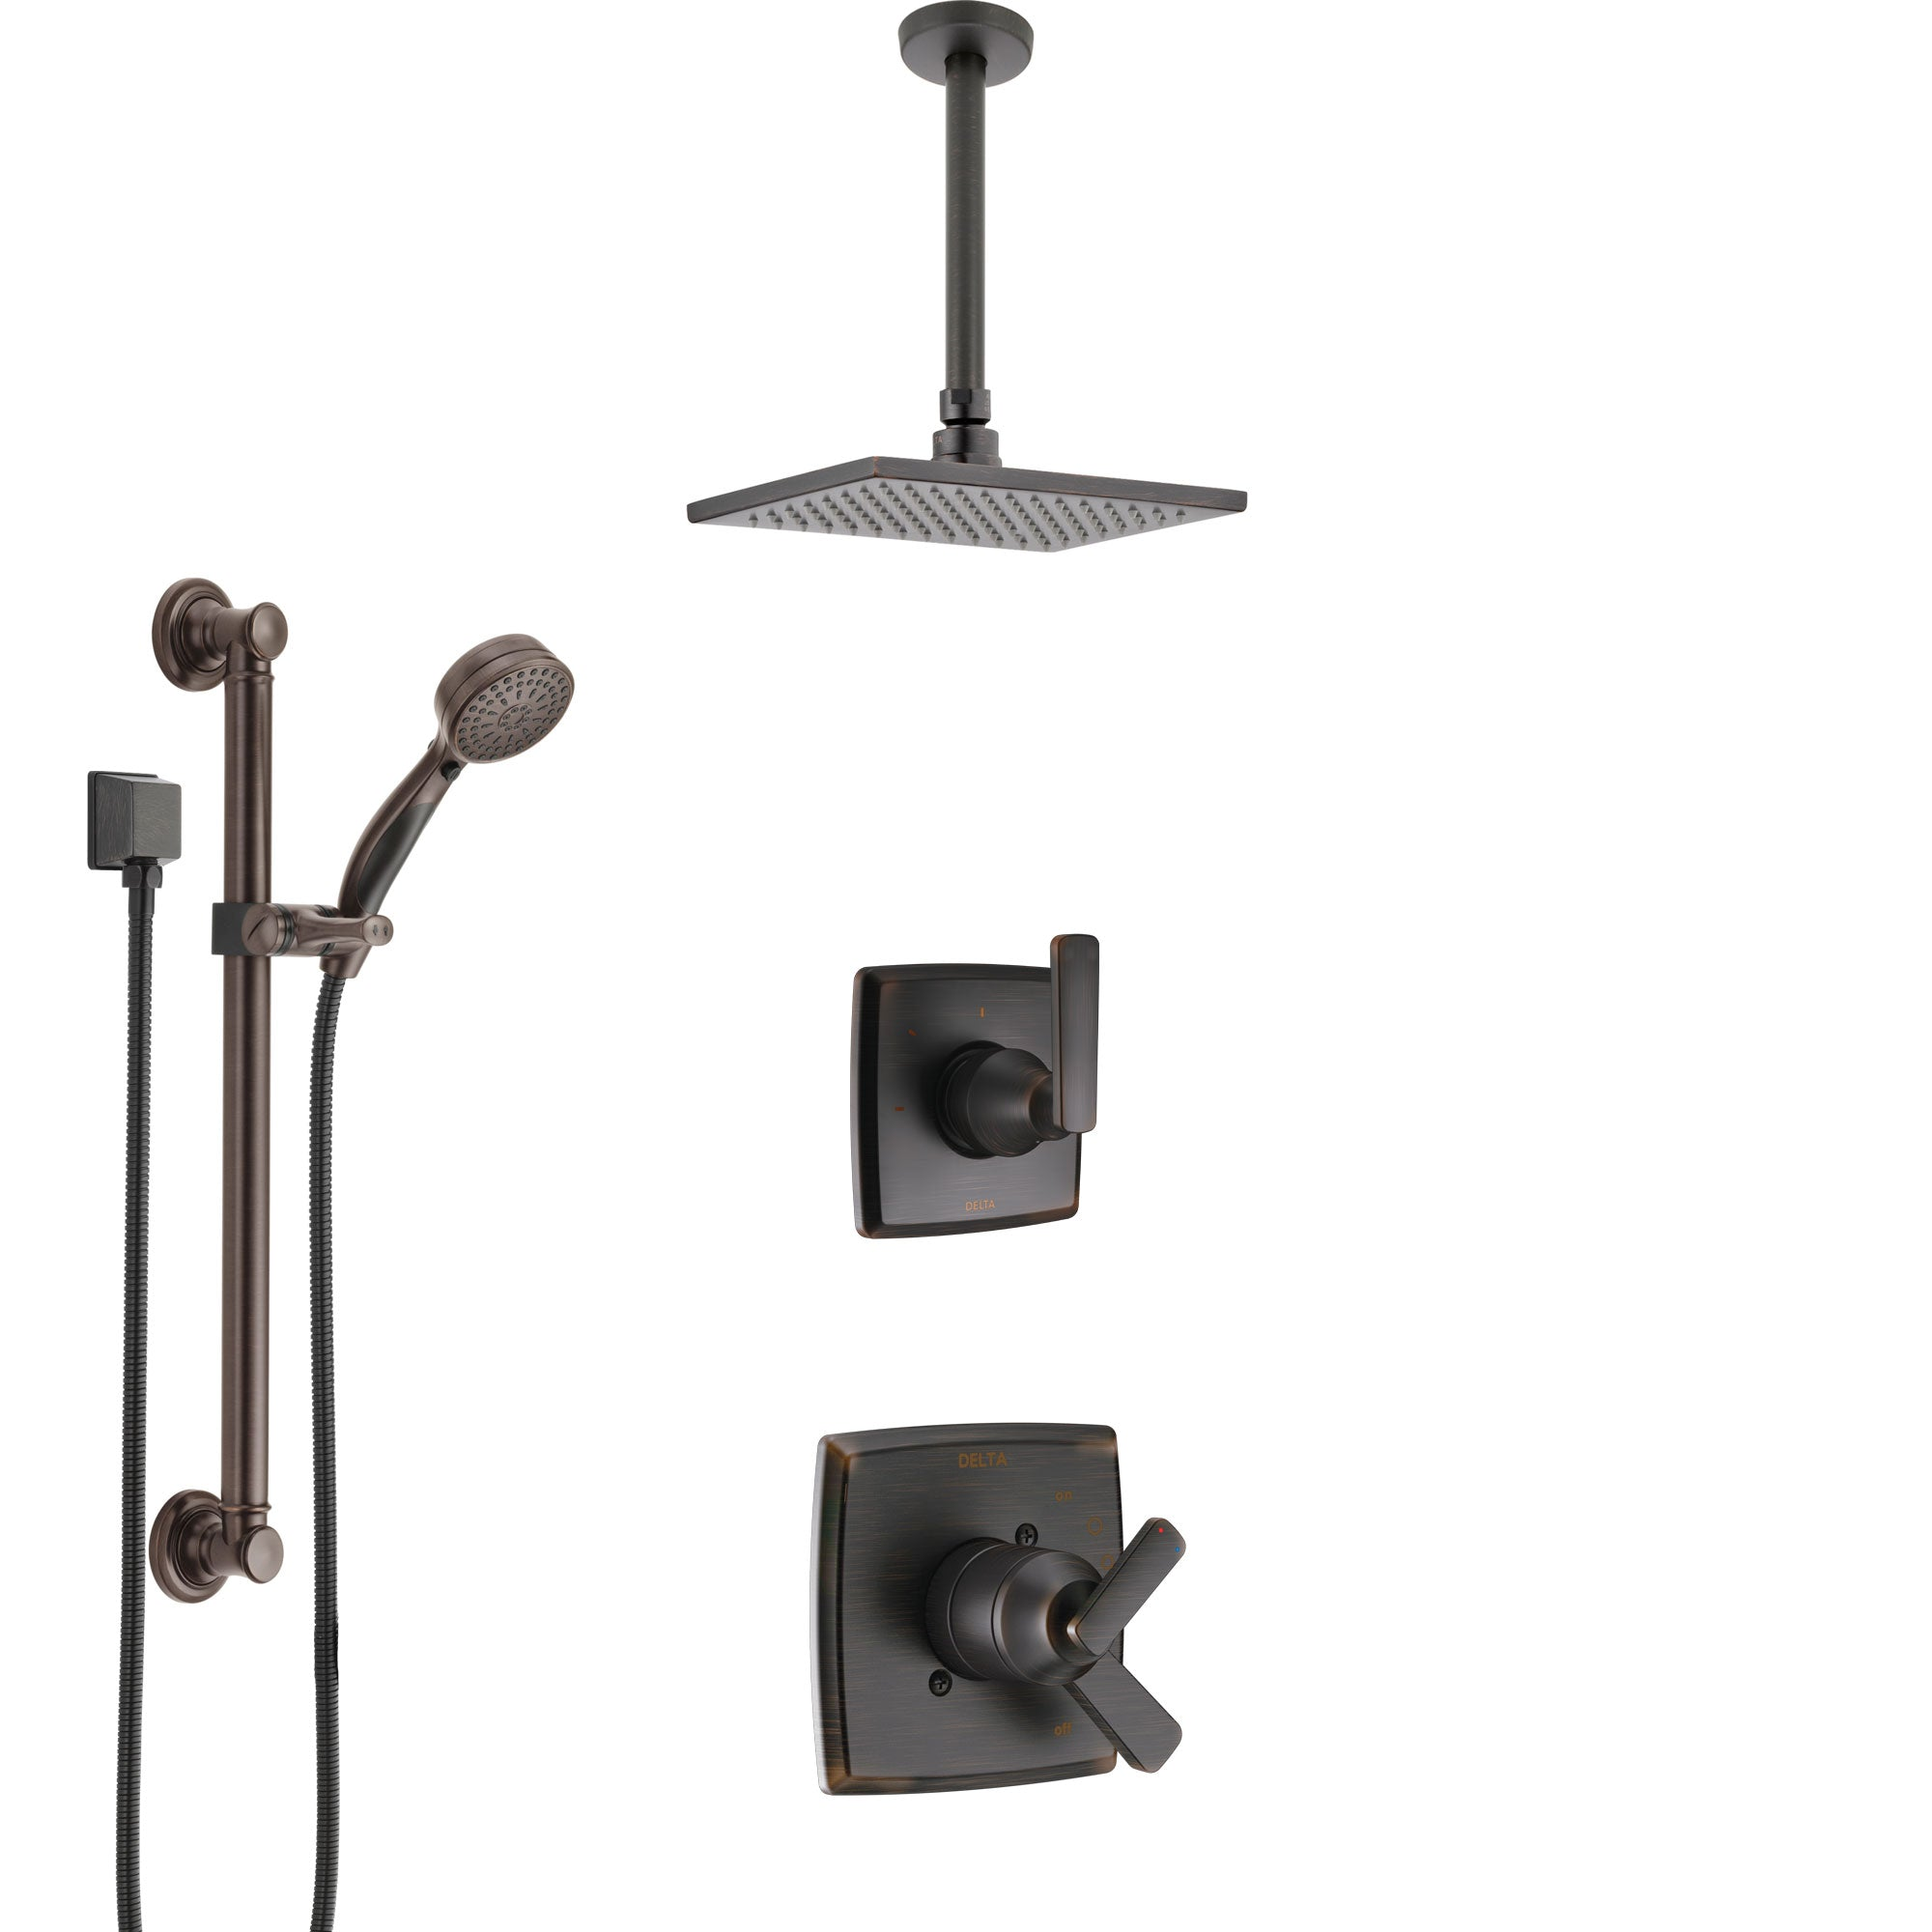 Delta Ashlyn Venetian Bronze Shower System with Dual Control Handle, Diverter, Ceiling Mount Showerhead, and Hand Shower with Grab Bar SS1764RB2